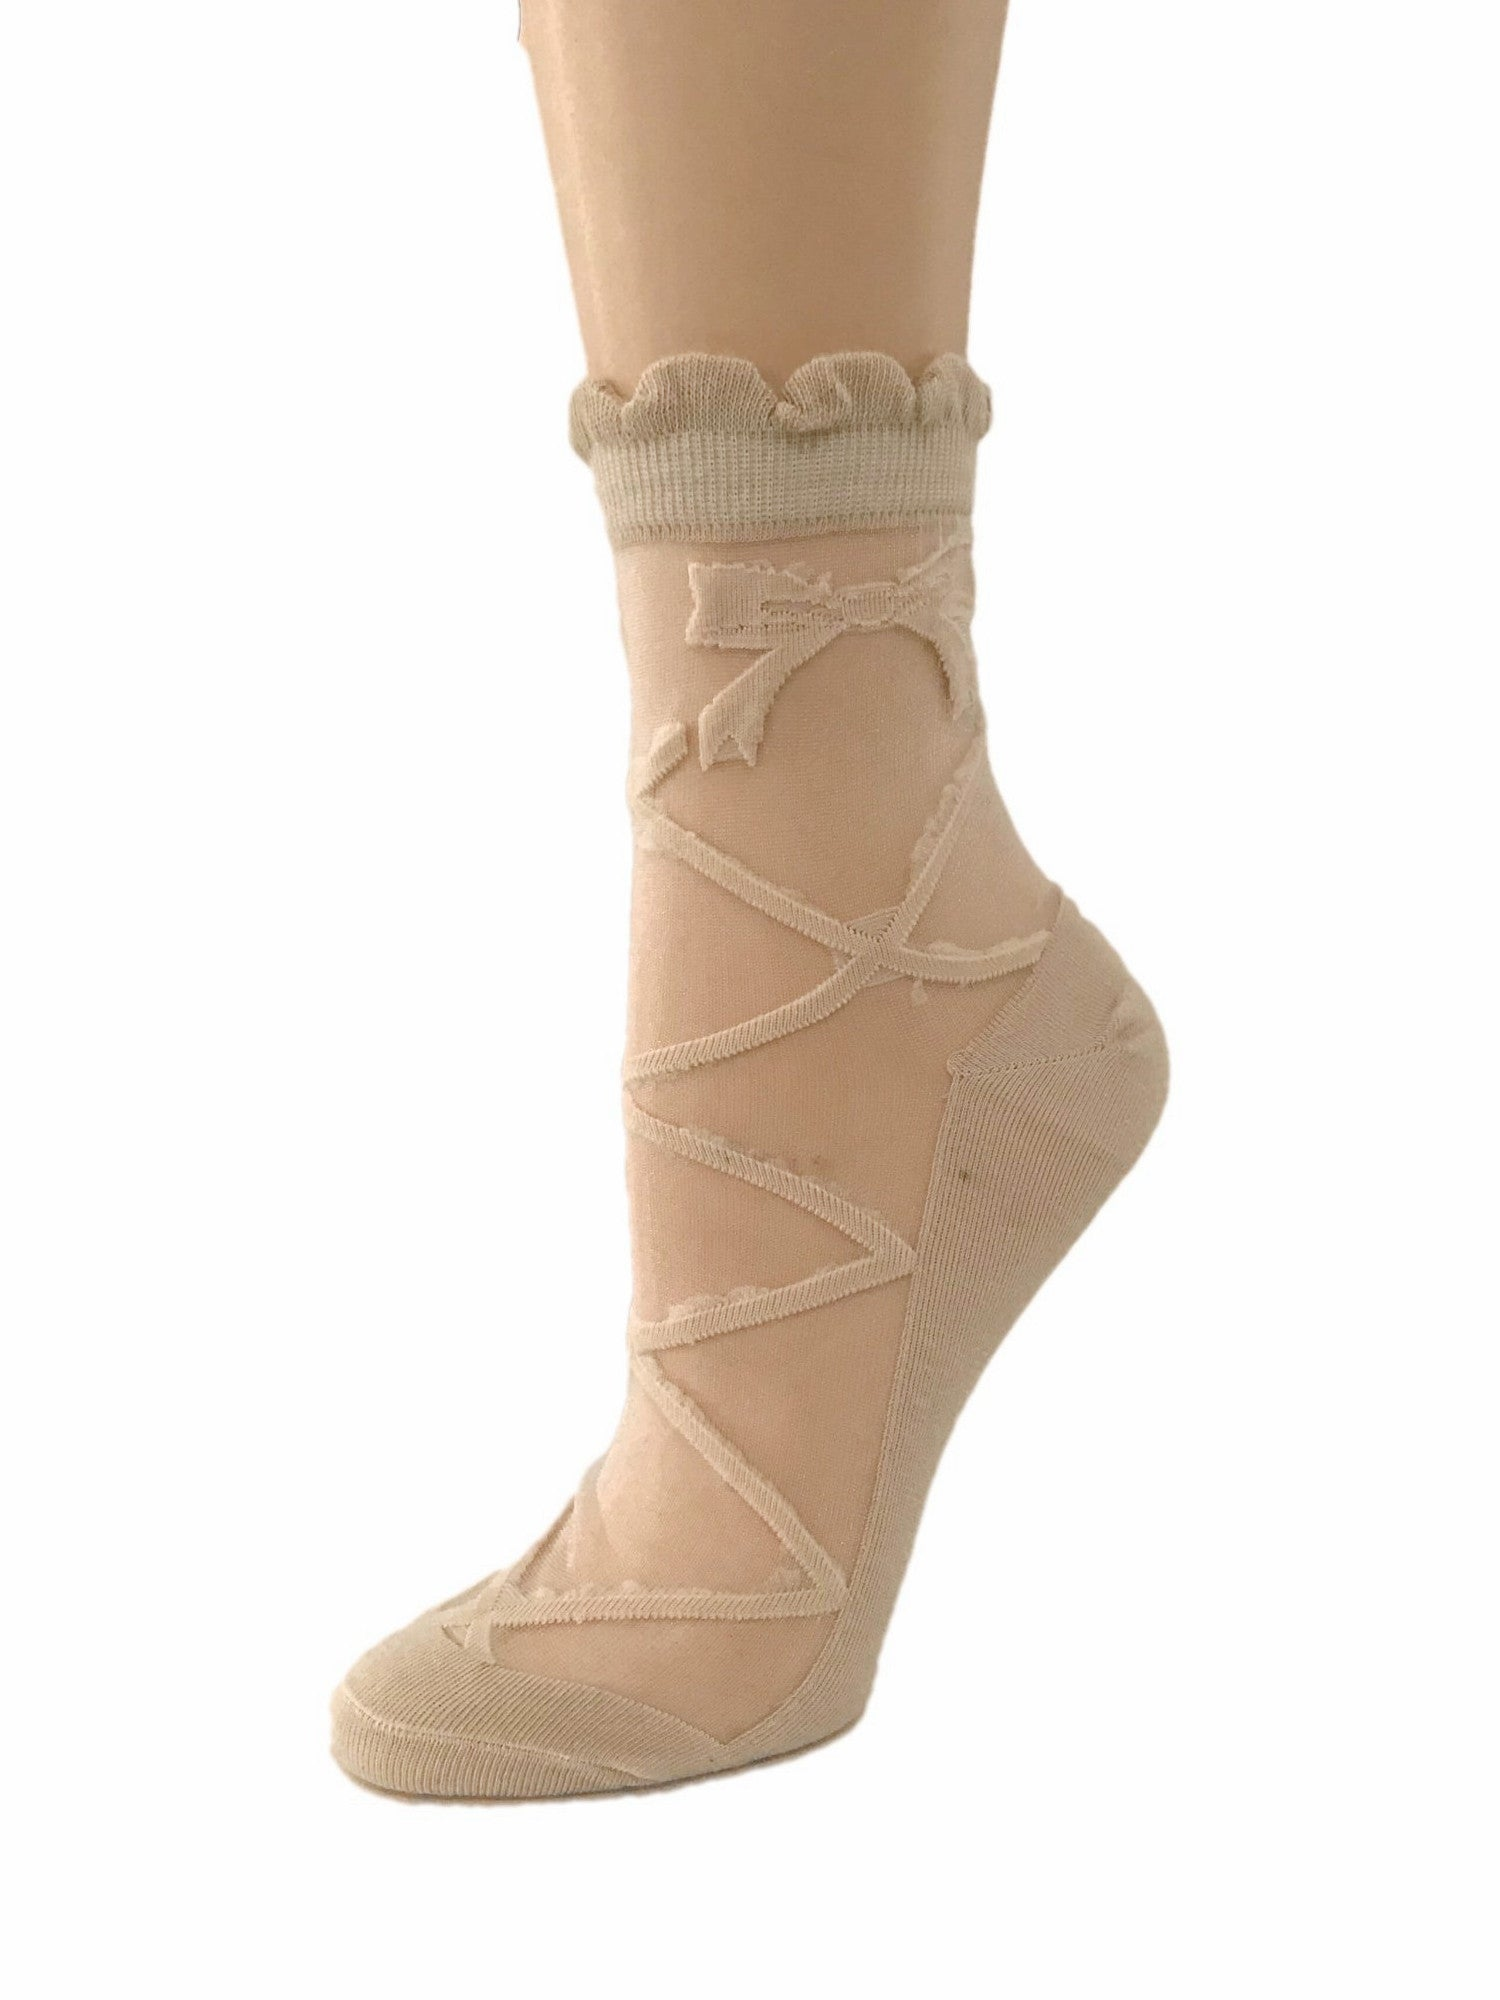 Furry Beige Bow Sheer Socks - Global Trendz Fashion®